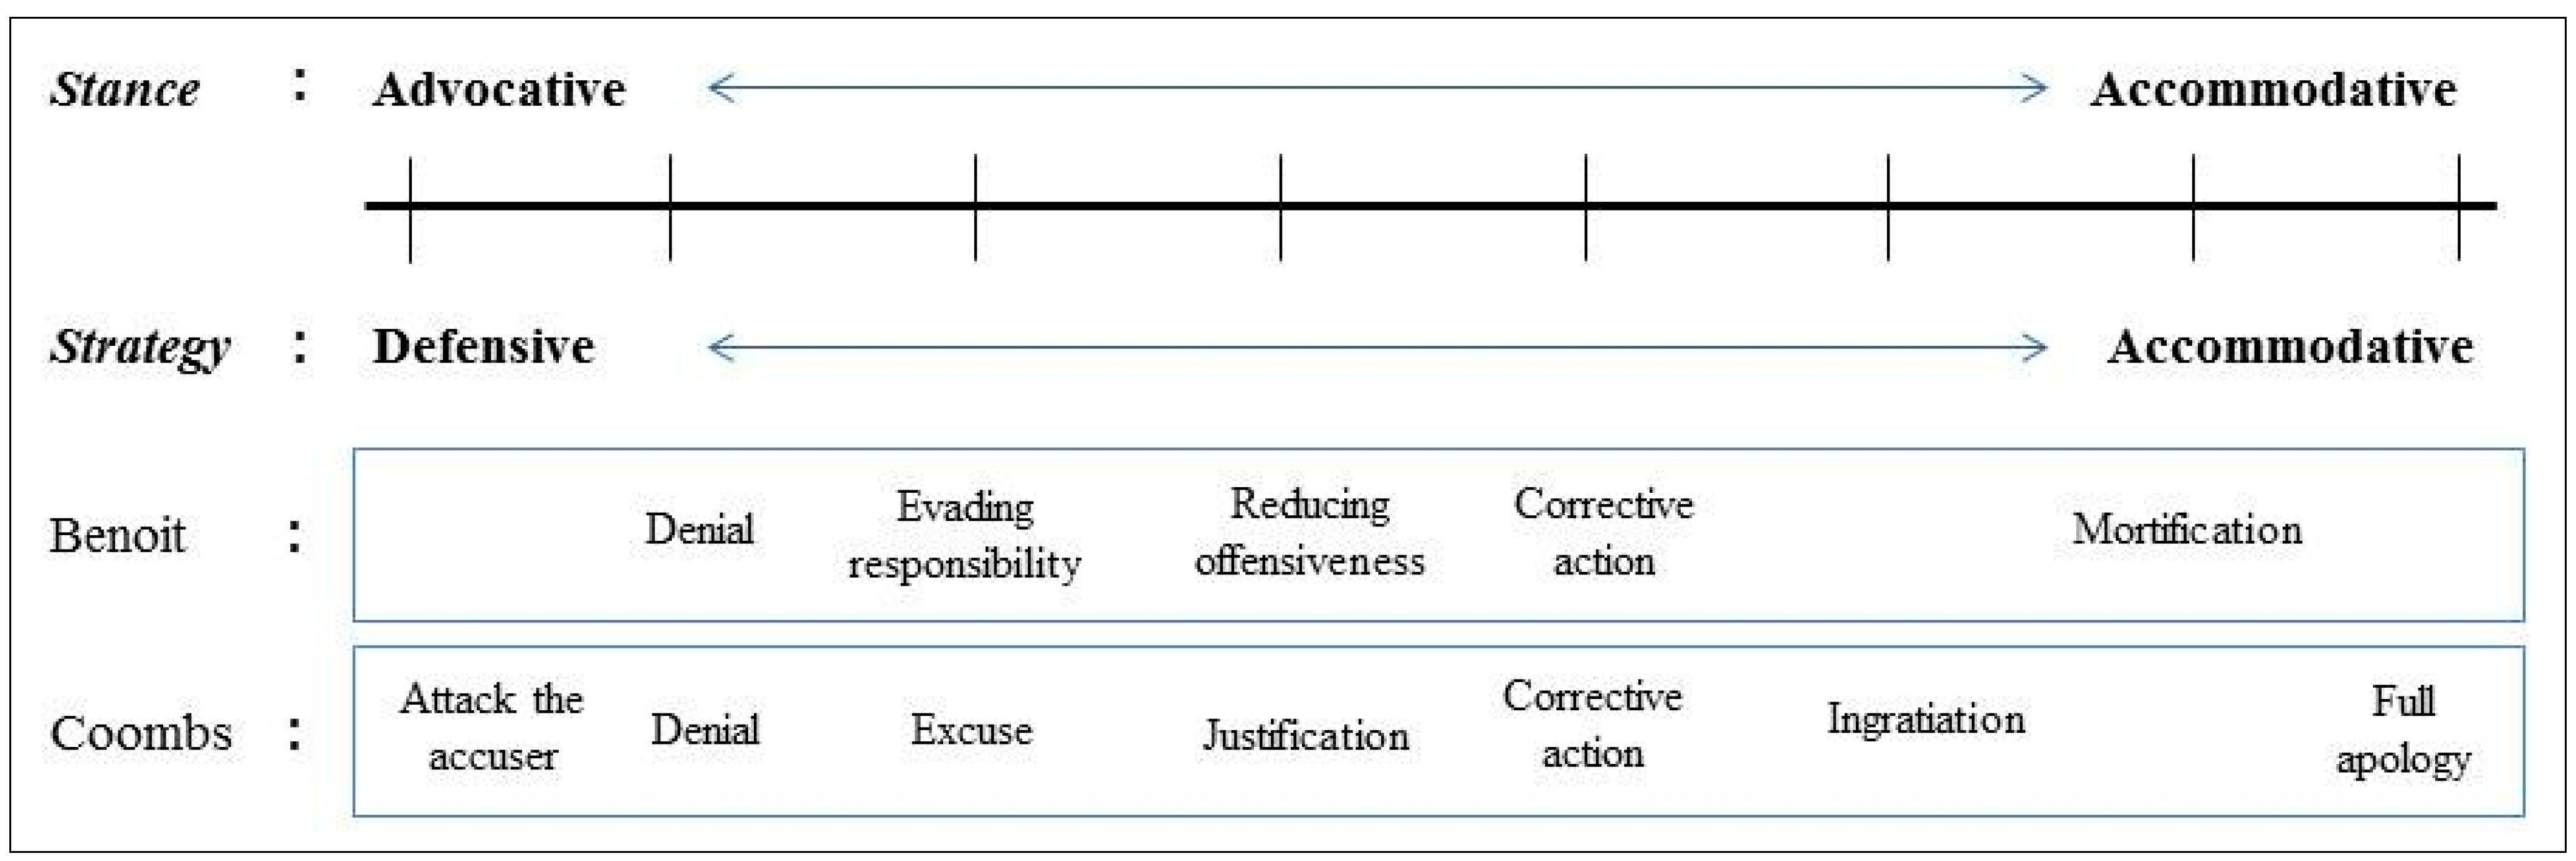 an analysis of the contingency theory of accommodation and advocacy Approach, based on a continuum from advocacy to accommodation  analysis,  strategic planning, audience  the contingency theory of accommodation for.